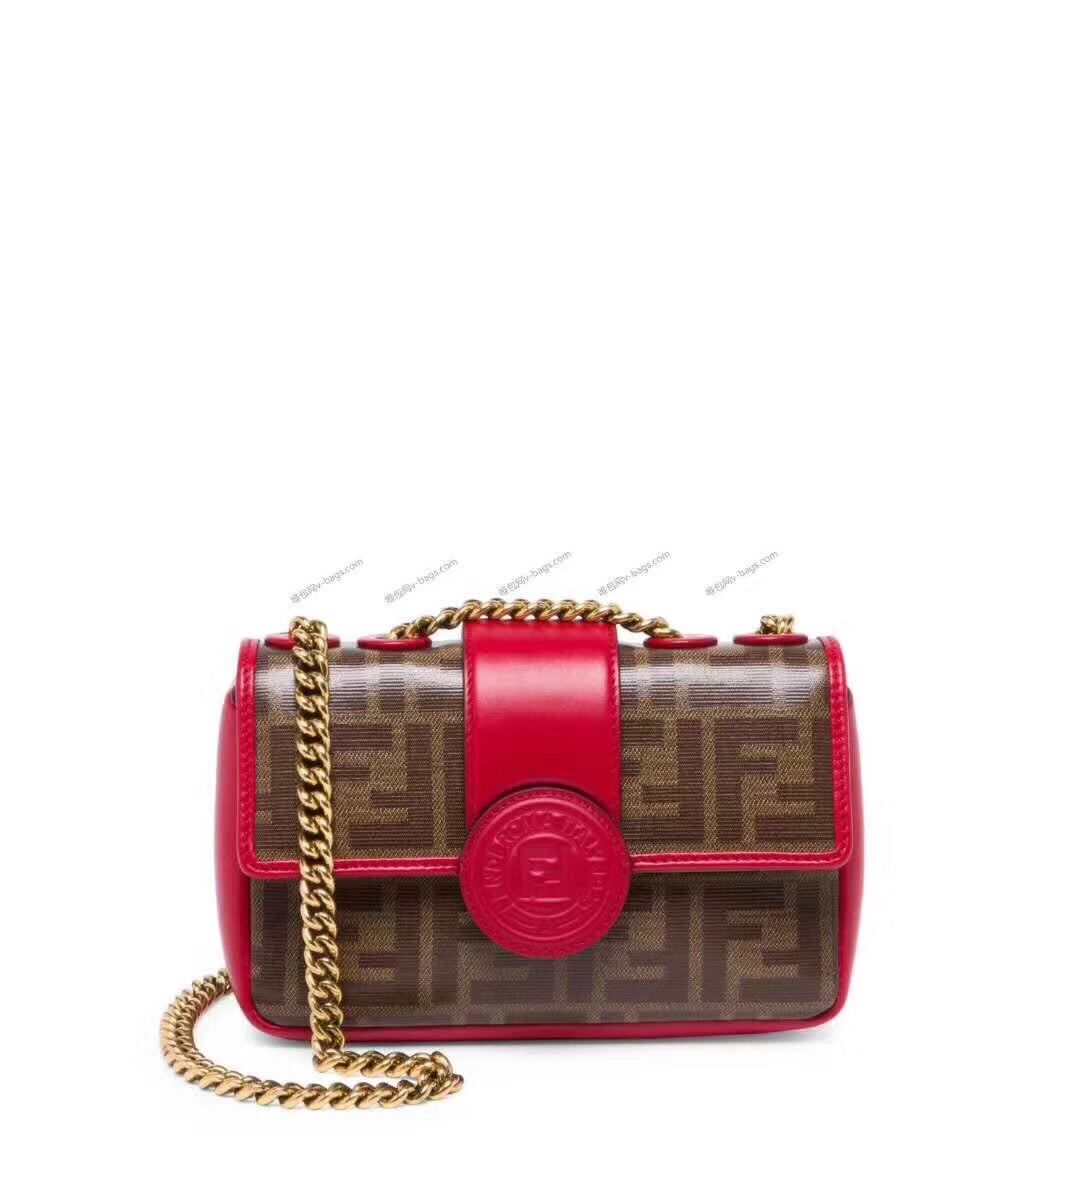 Fendi WALLET ON CHAIN 8HF836 RED